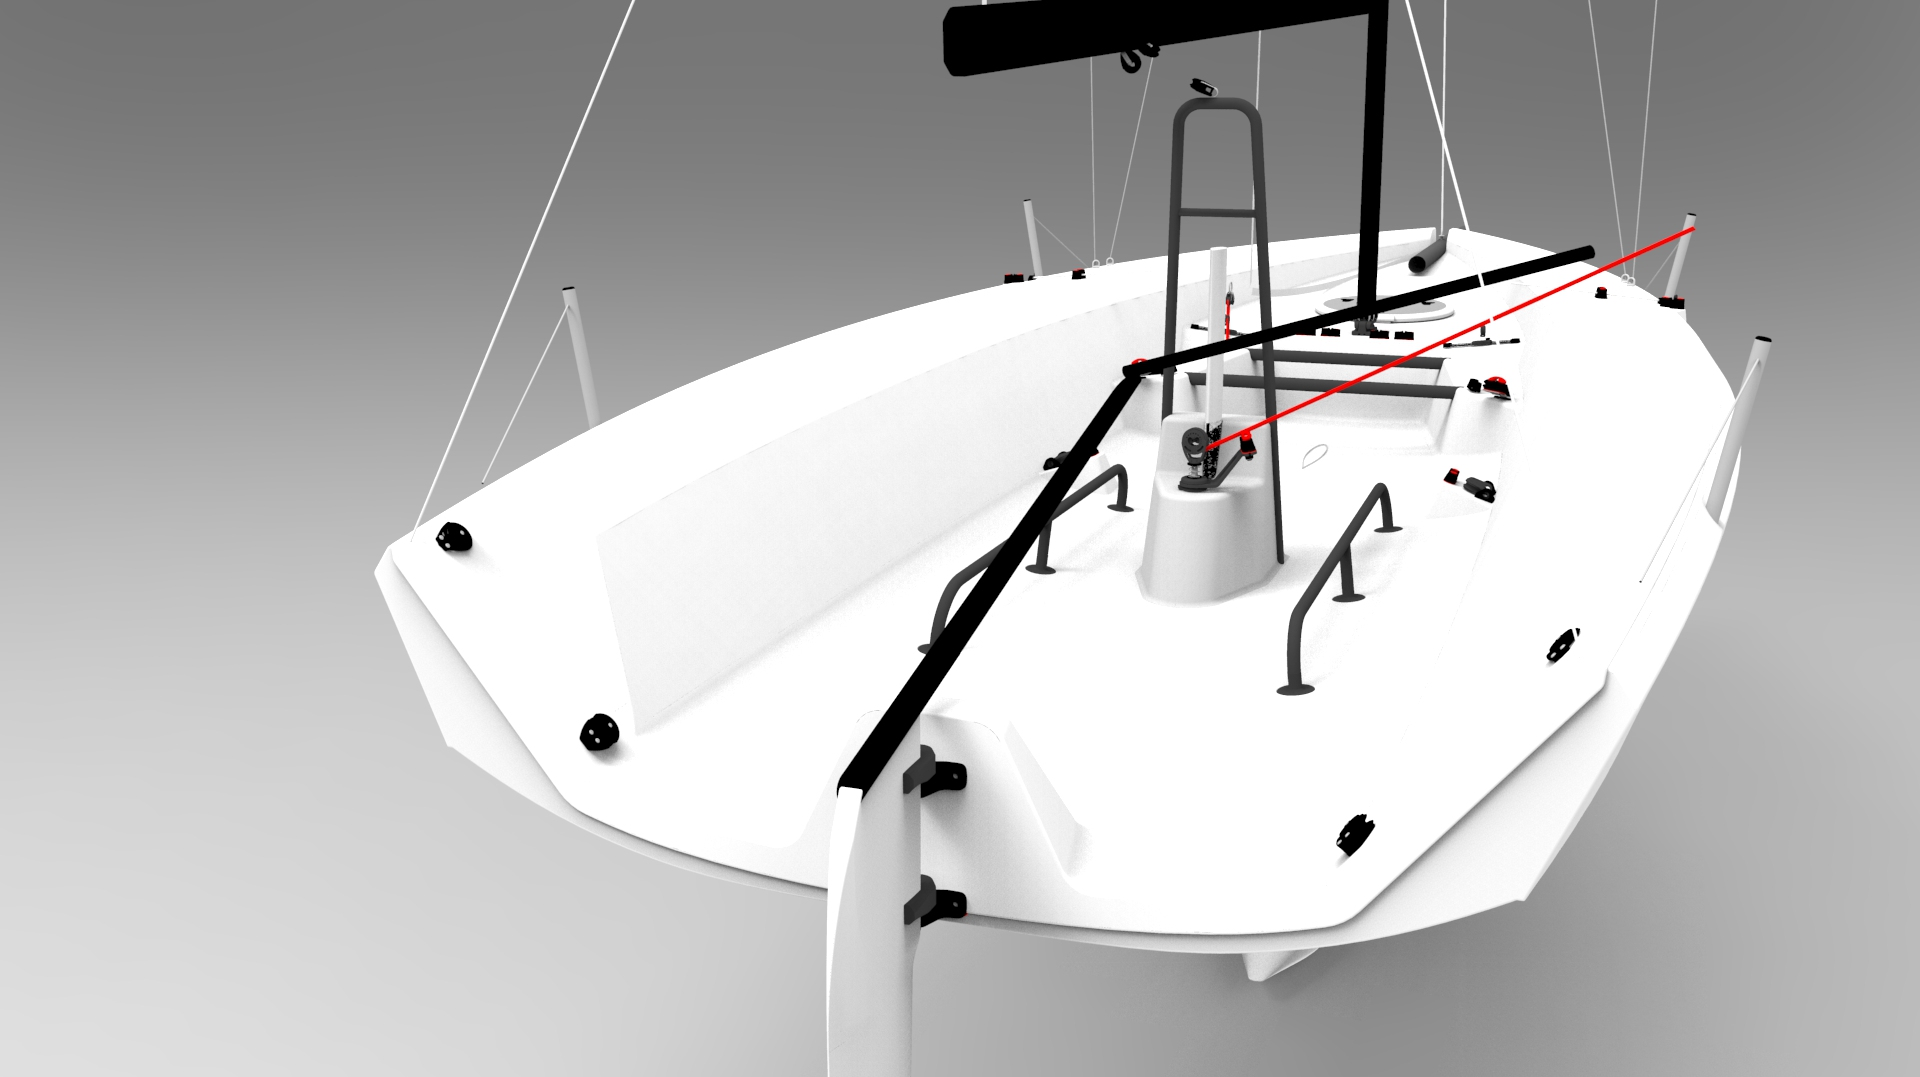 RS21 Keelboat - perfect club racer/day sailer